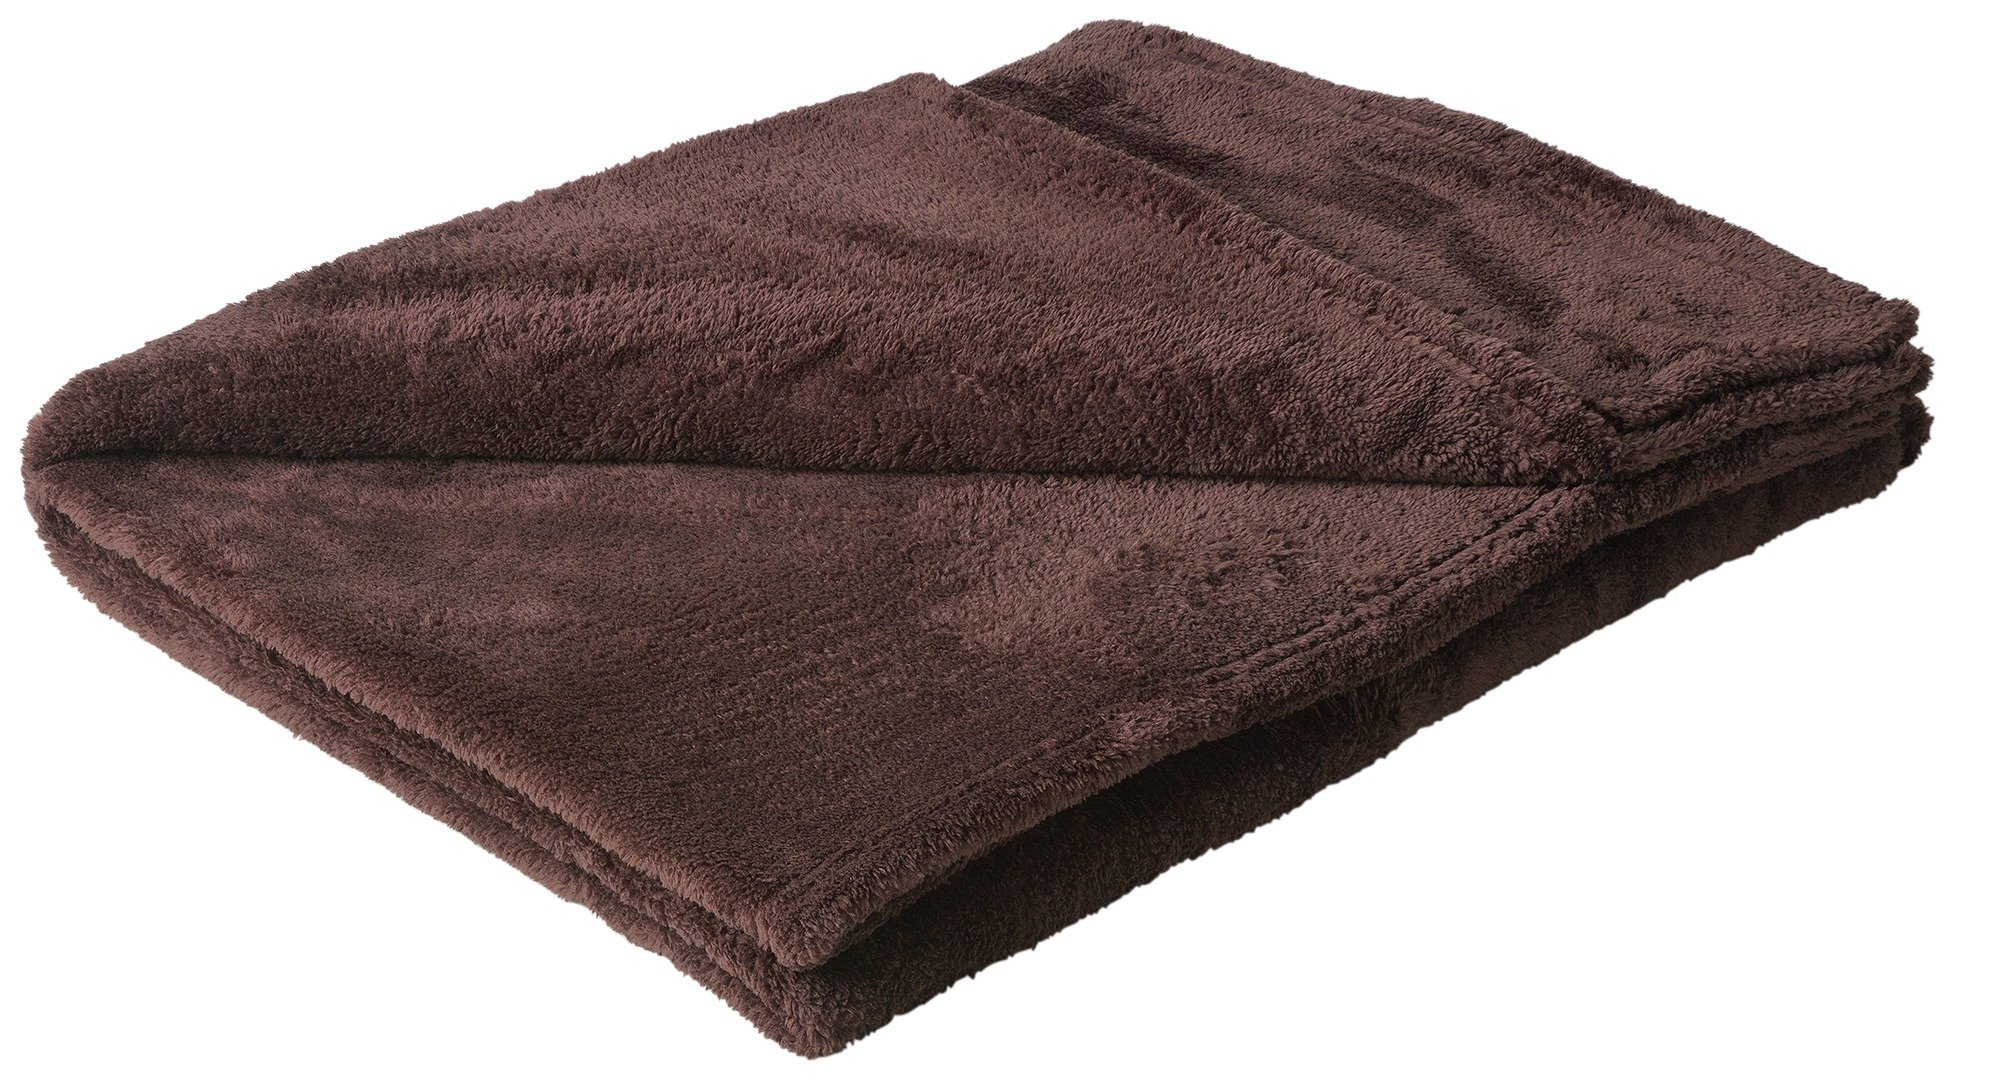 HOME Soft Fleece Throw - Chocolate